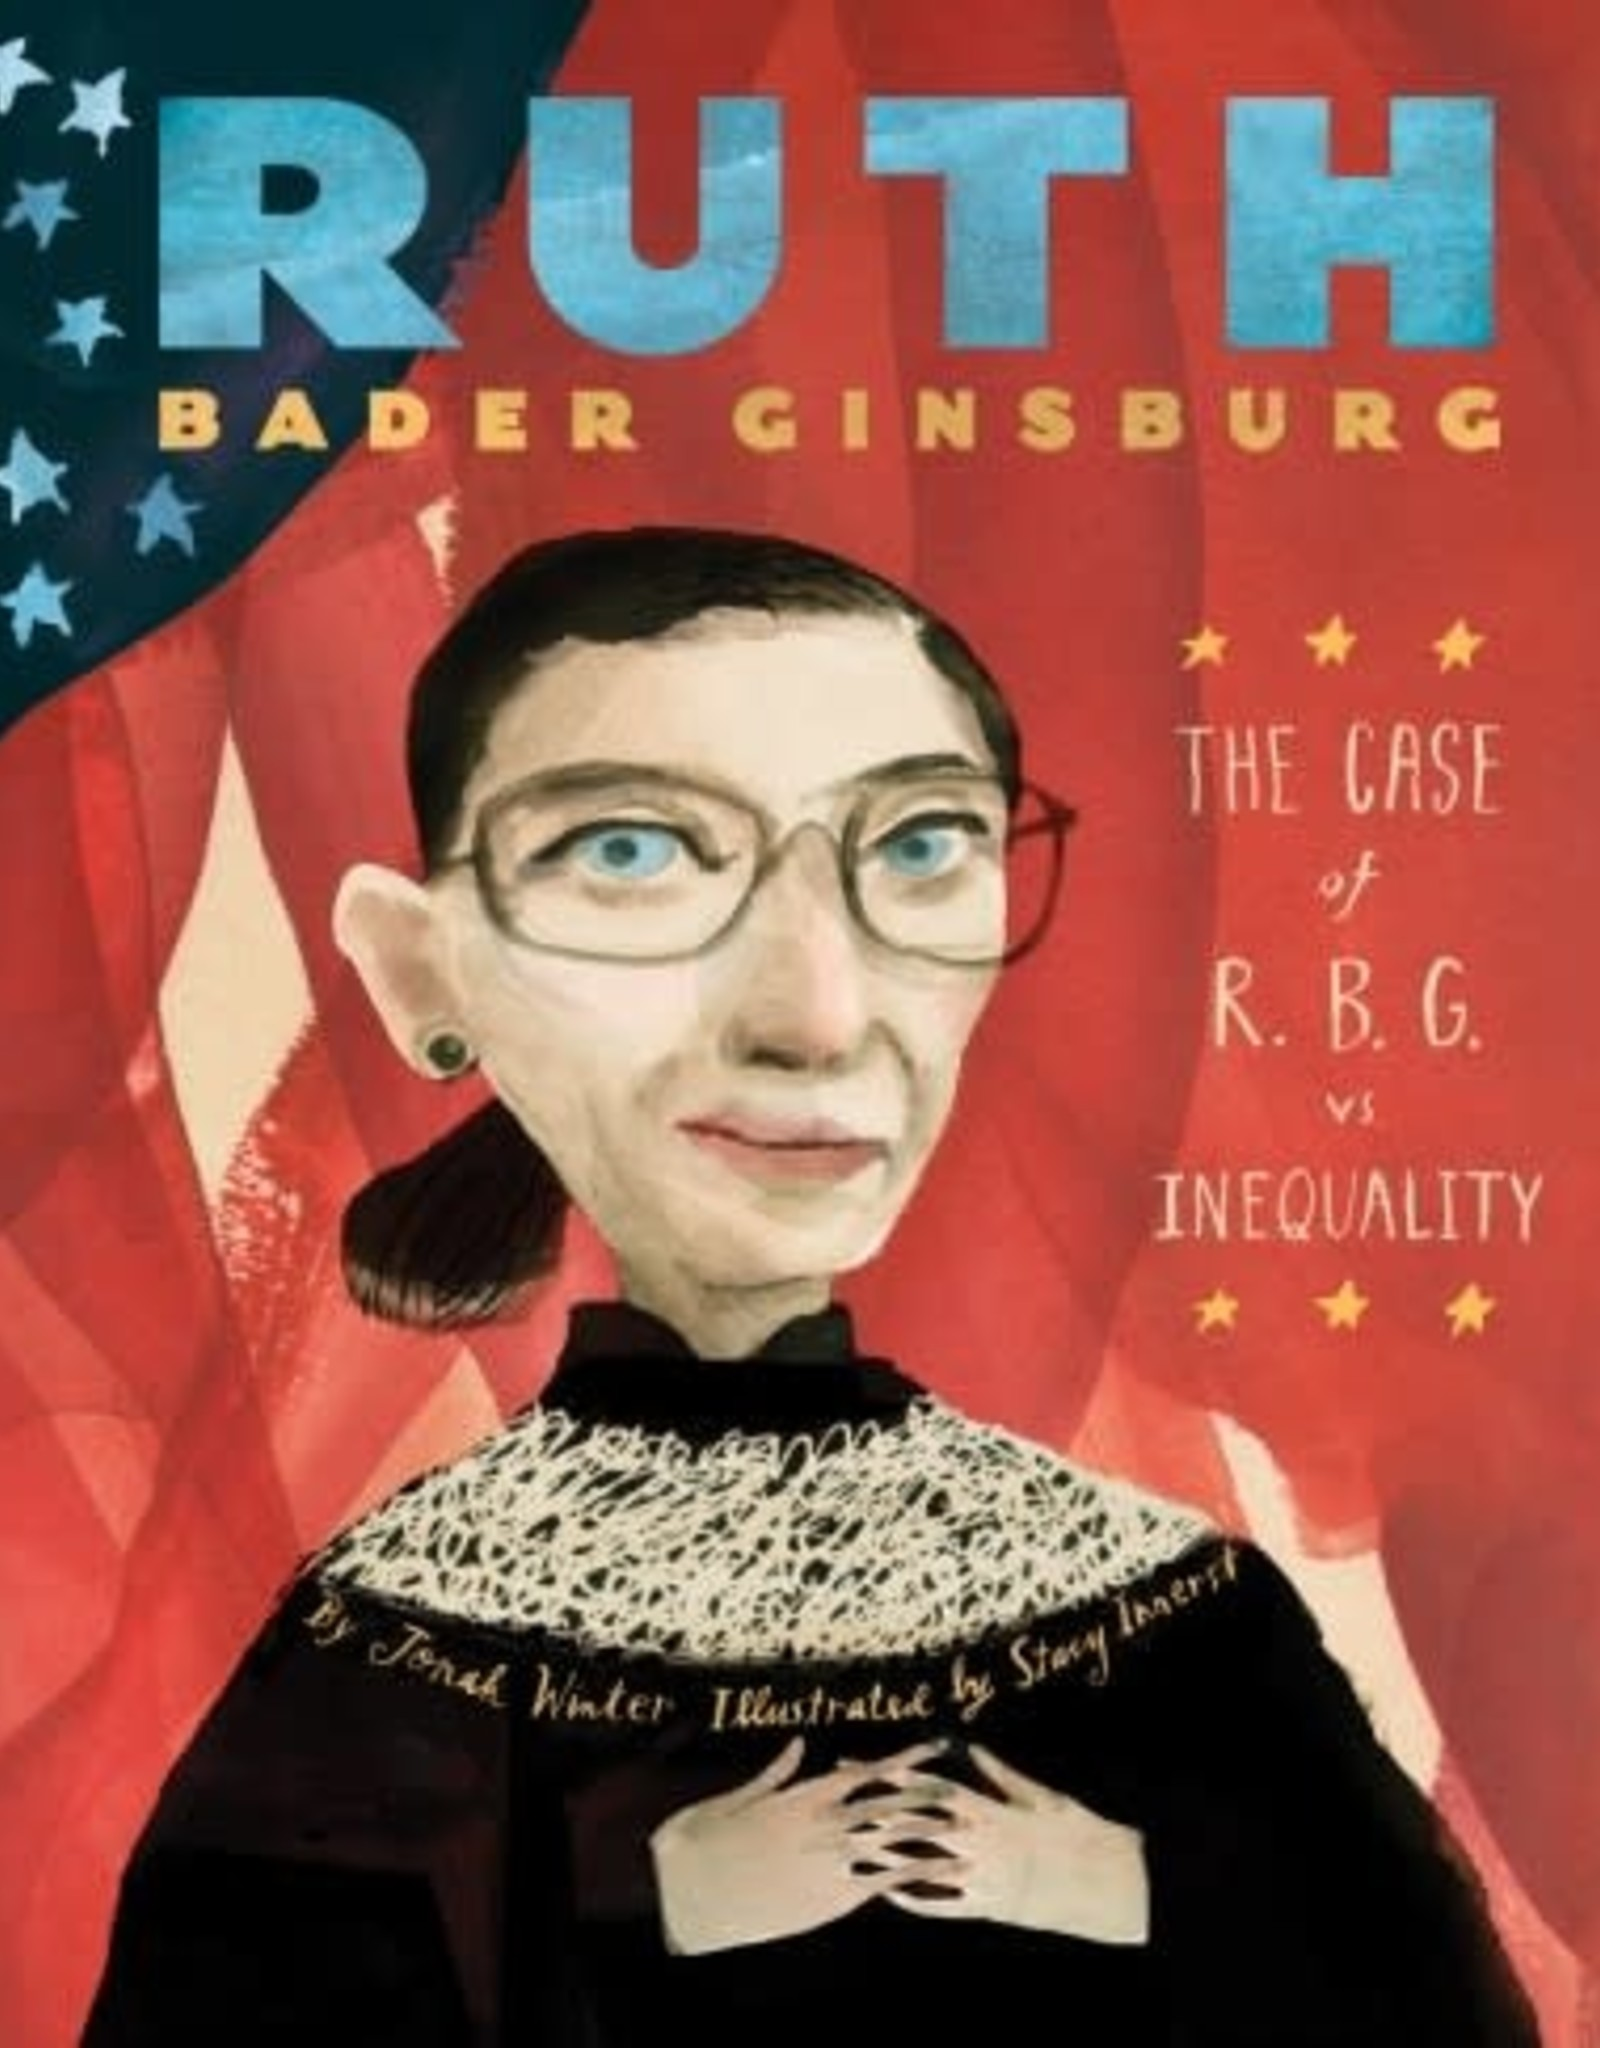 Ruth Bader Ginsburg, The Case of R.B.G. vs. Inequality - Hardcover